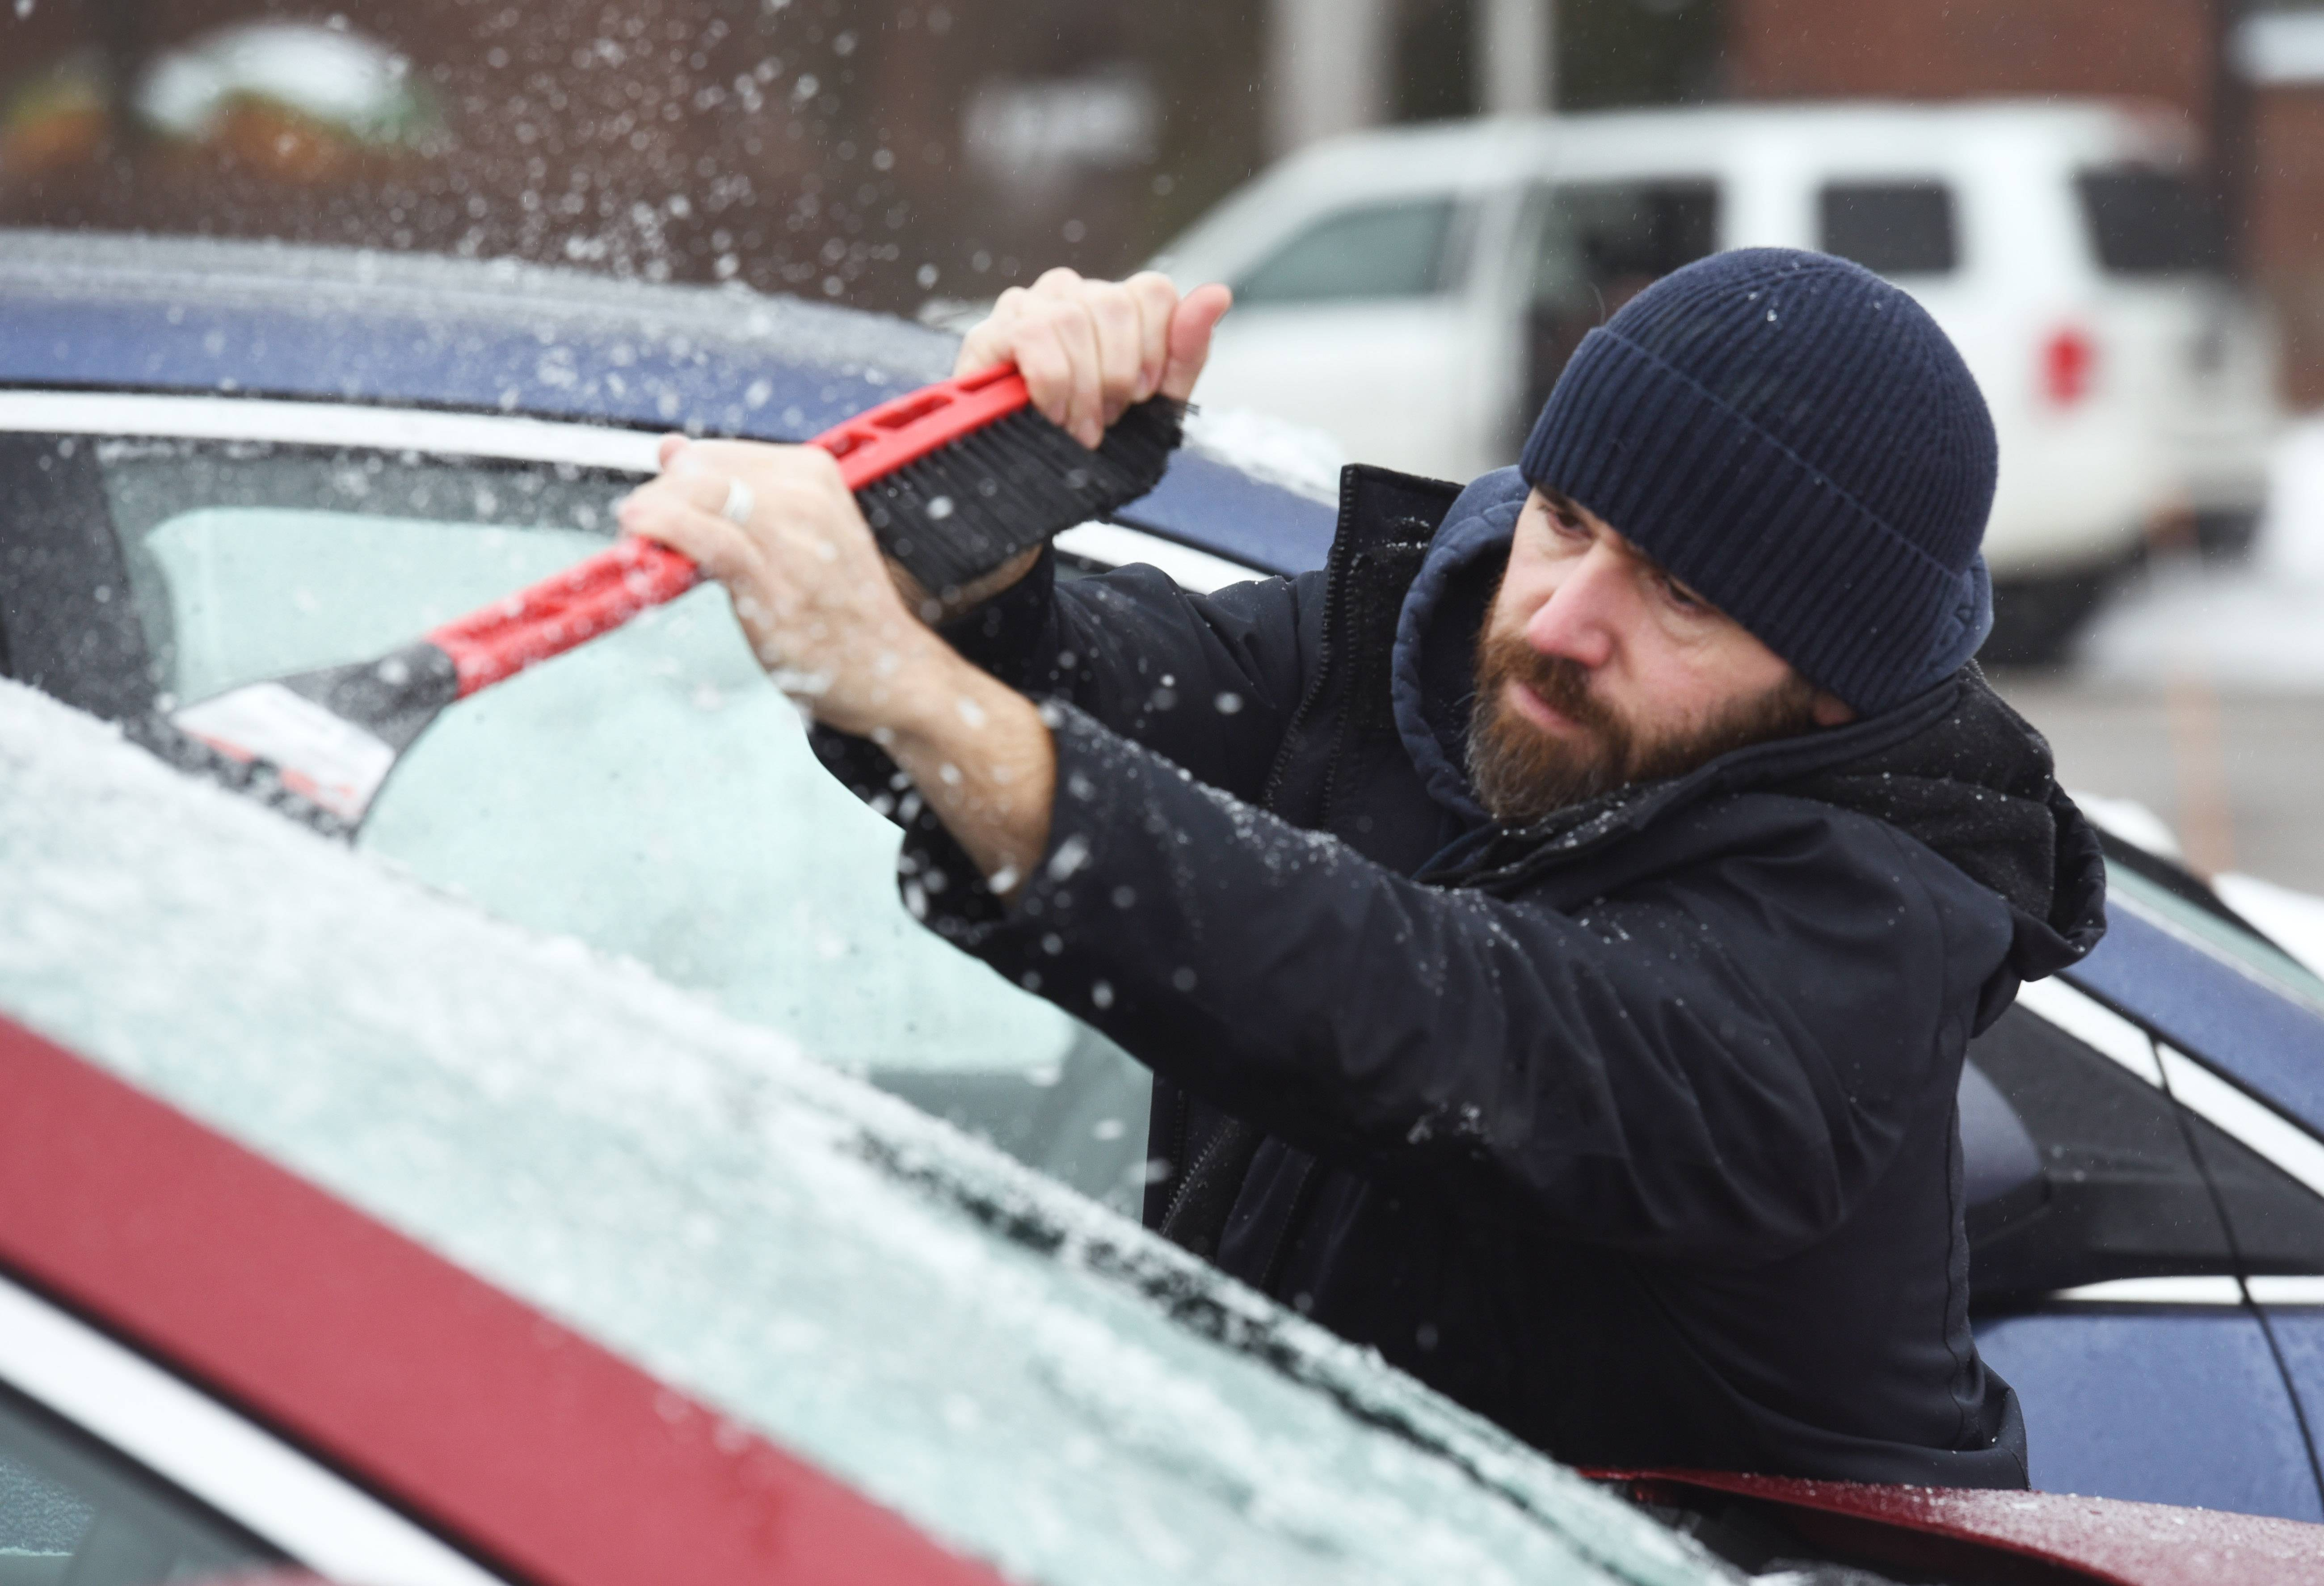 Michael Weaver of Libertyville scrapes ice off his windshield Tuesday at the Cook Park Library in Libertyv ille. Freezing rain moved into the area Tuesday morning.